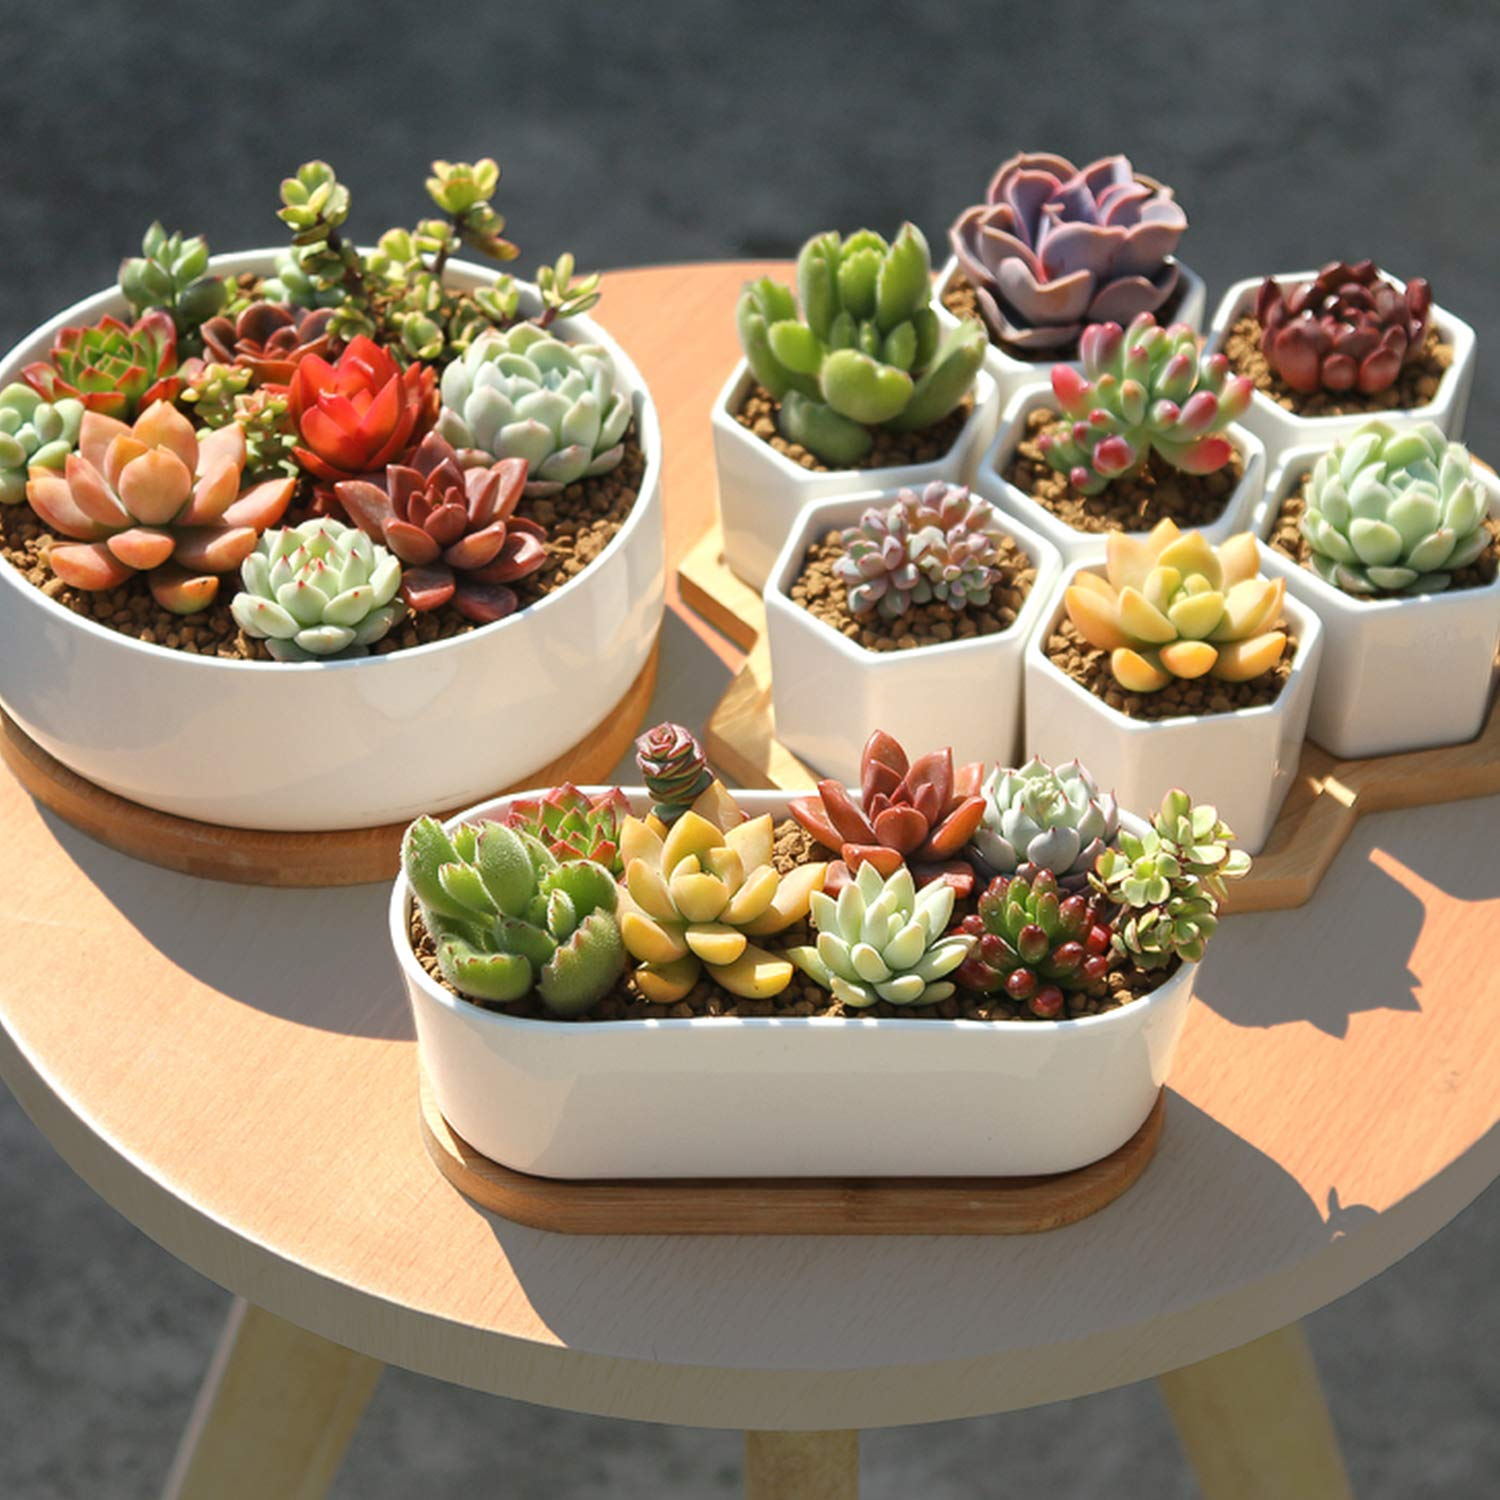 Premium Rosette Succulents, 9 Assorted Rooted Succulents in 4'' Planter Pots with Soil, Real Live Succulents Bonsai for Indoor Home Office Cactus Decor, Terrariums, Mini Garden by The Next Gardener (Image #3)